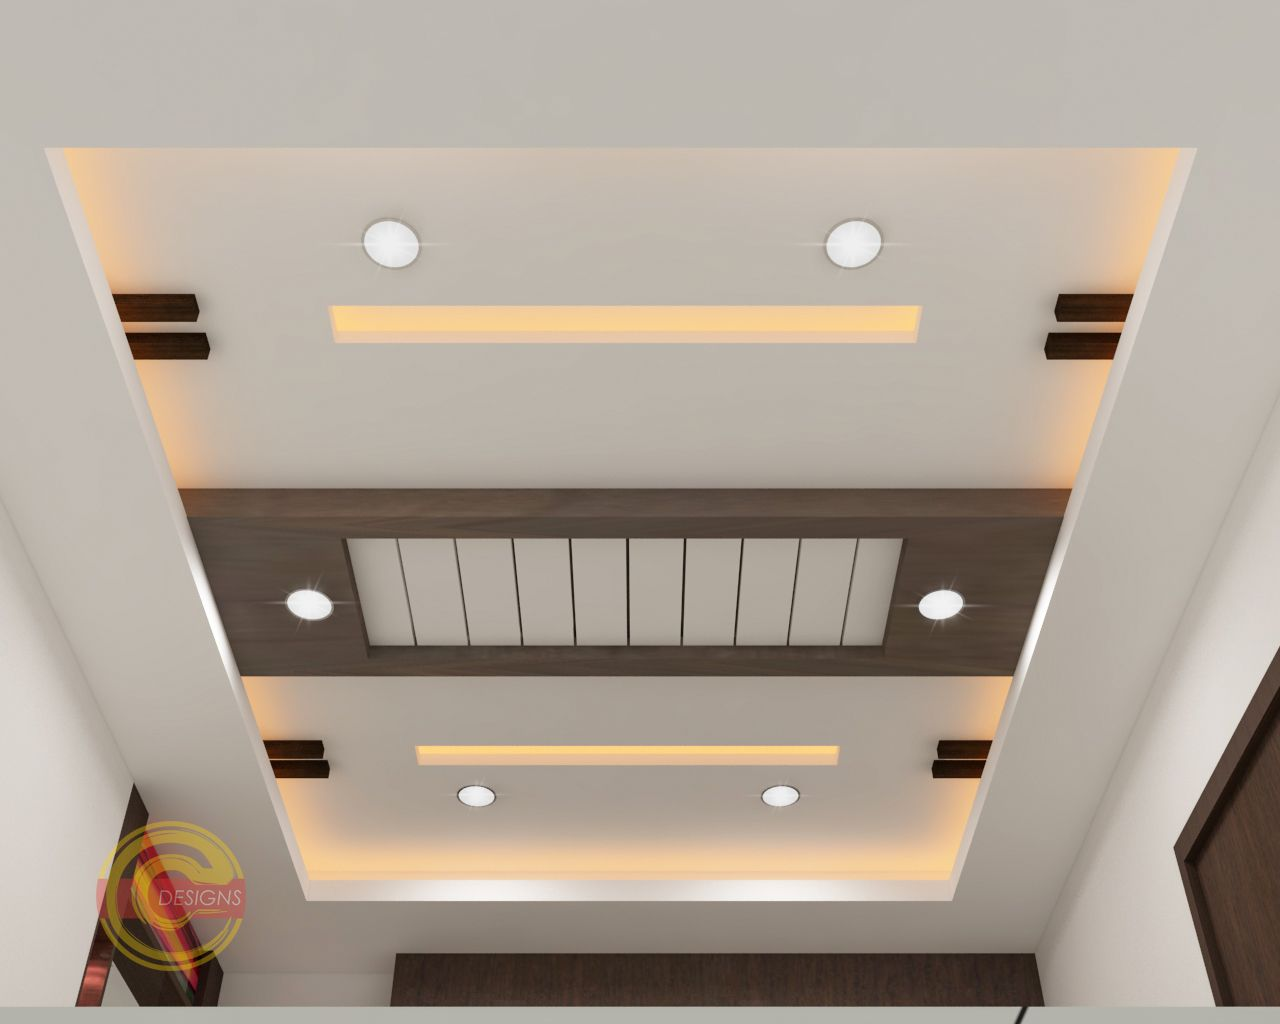 Fall Ceiling Designs Concepts | 3D Concepts in 2020 ...